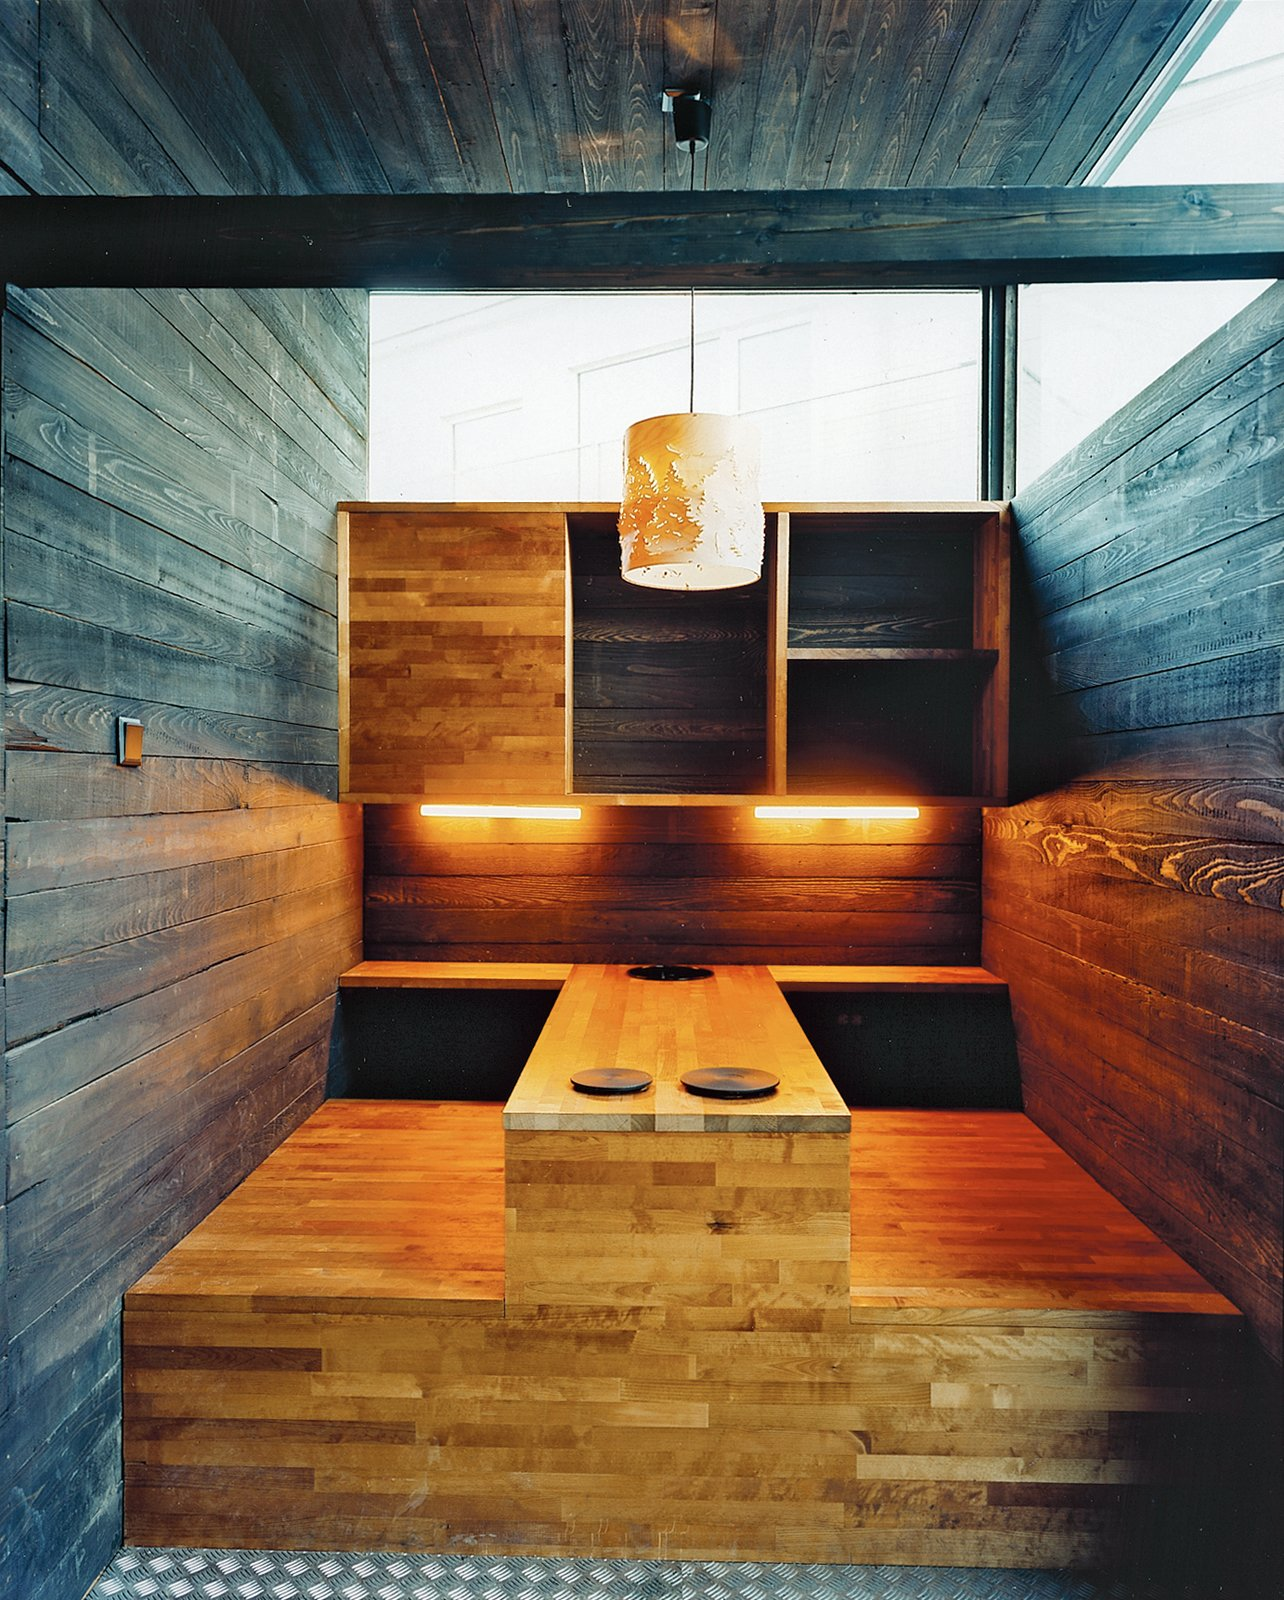 The kitchen table, built into the structure of the house, includes two hot plates. Rintala says these were inspired by the Korean way of cooking: Residents and guests will cook their own food at the table.  Photo 1 of 5 in A Norwegian Boxhome Gleams with Optimism